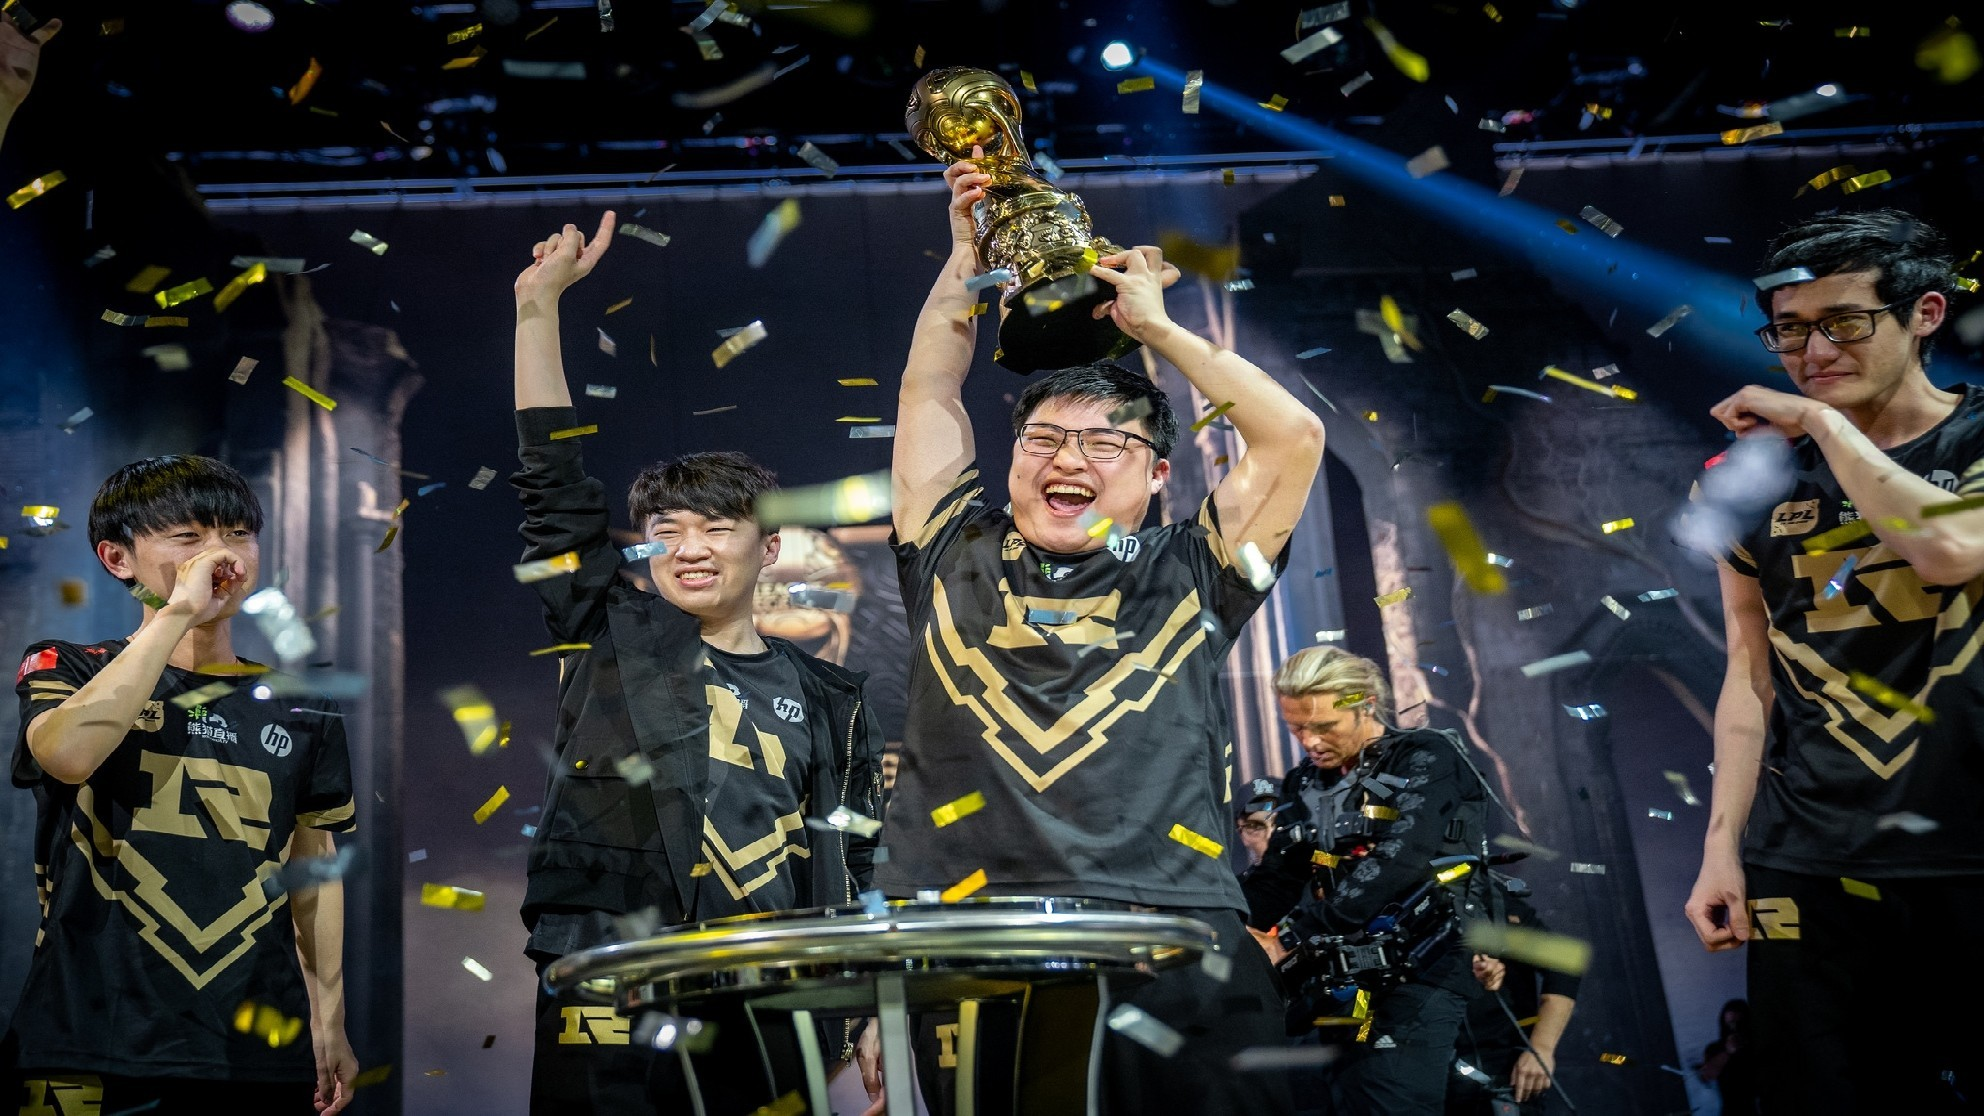 And the trophy goes to … Royal Never Give Up!